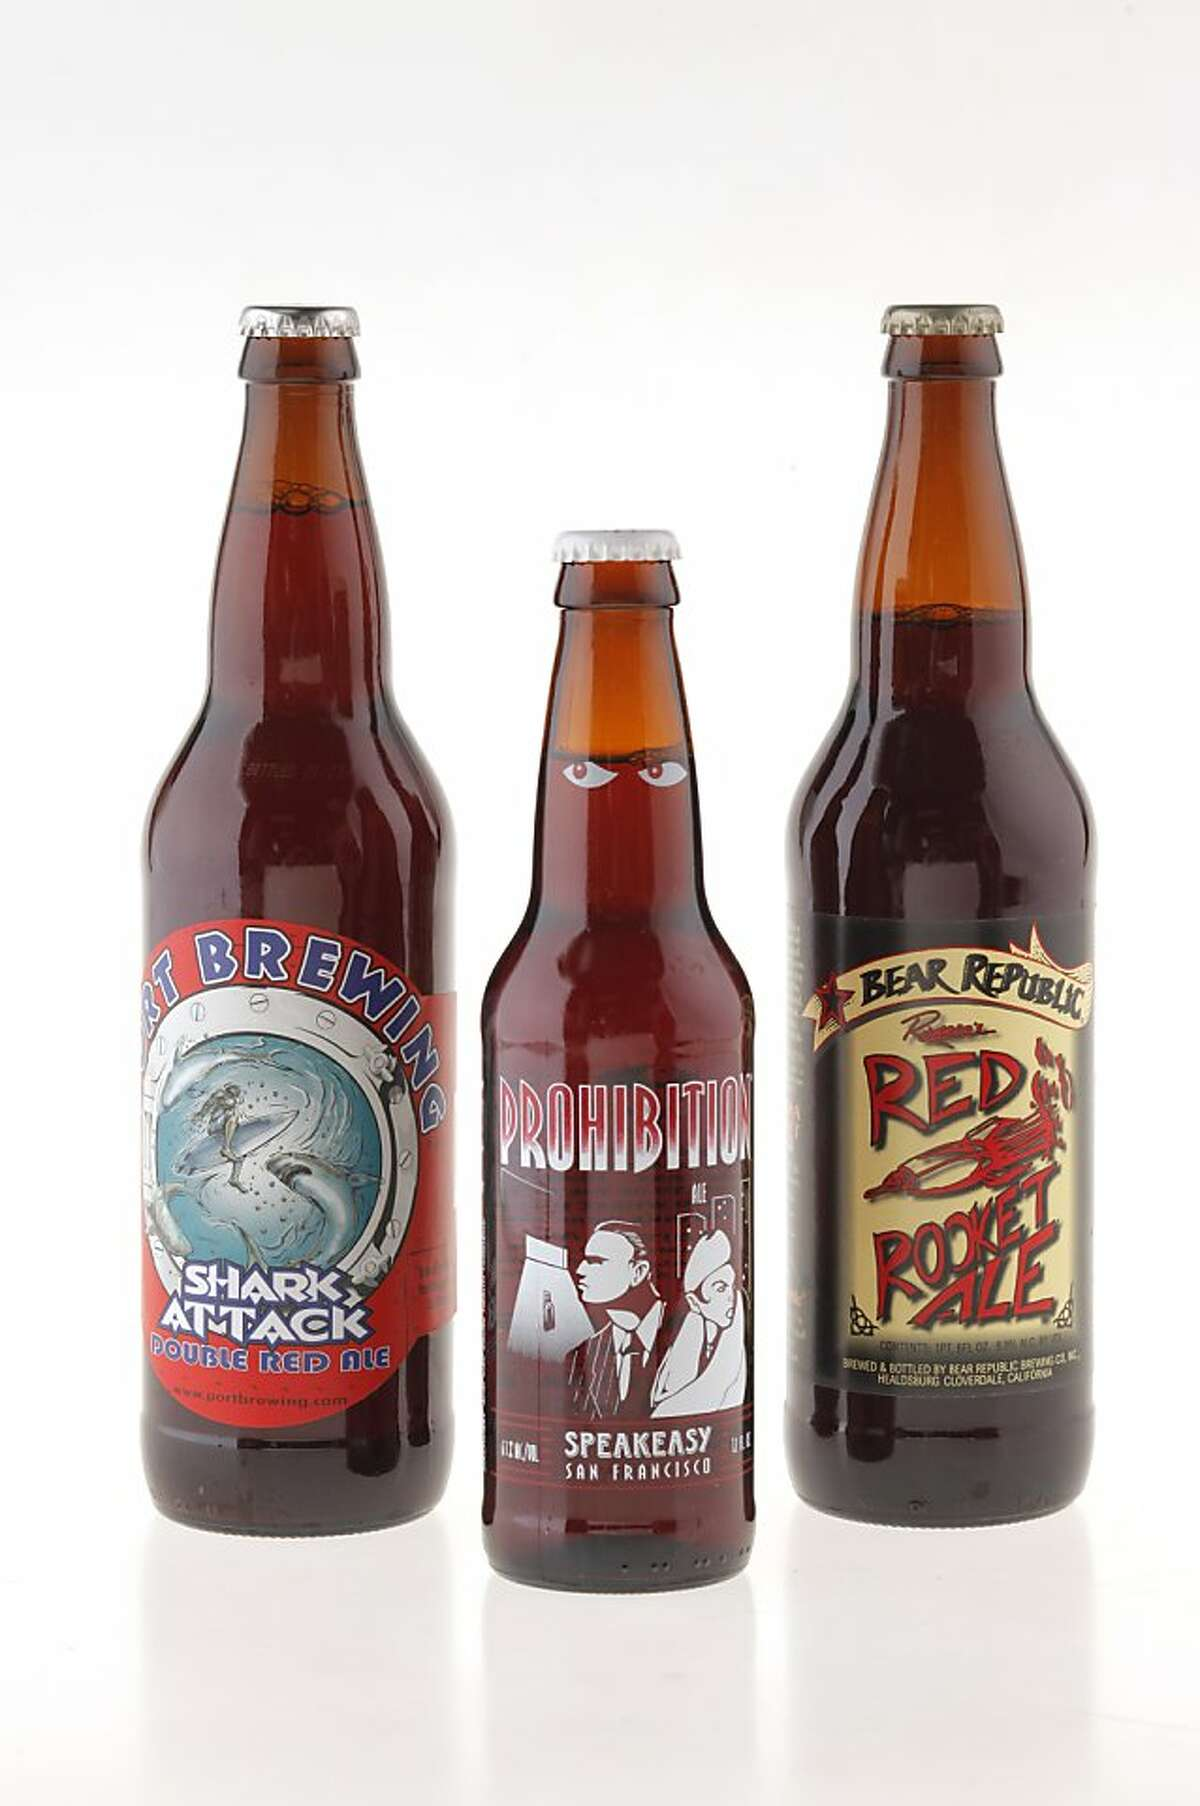 From left: Port Brewing Shark Attack Double Red Ale, Speakeasy Prohibition Ale, and Bear Republic Red Rocket Ale.